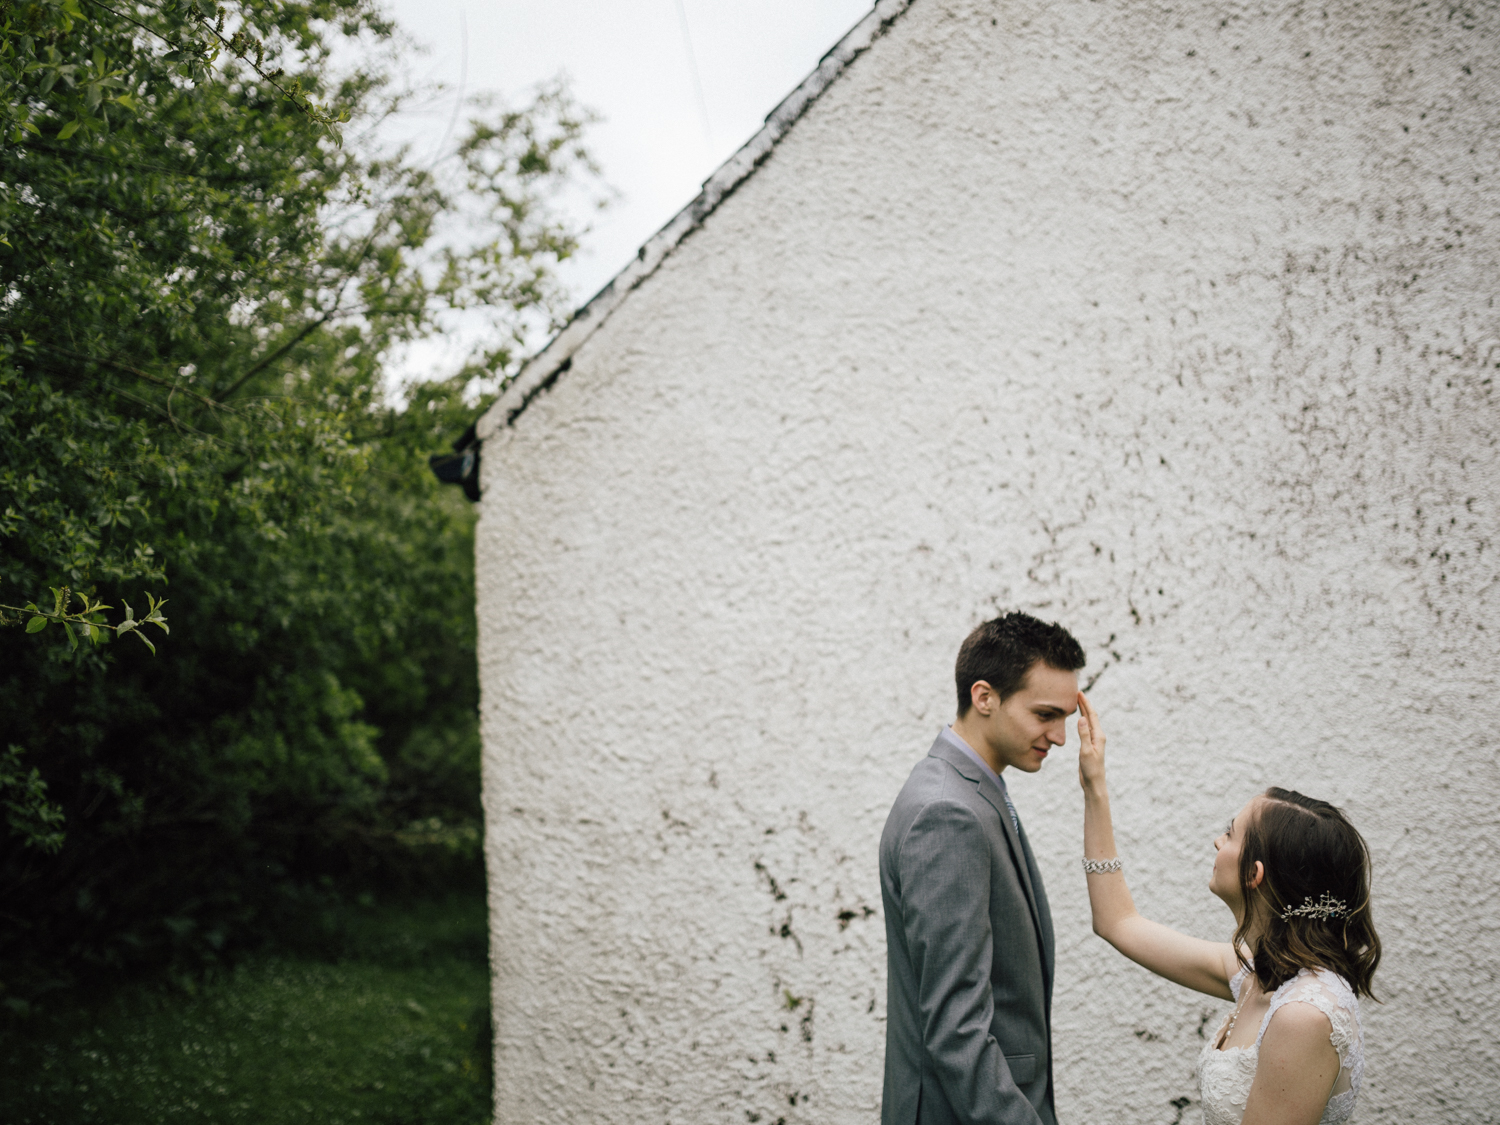 capyture-wedding-photographer-destination-elopement-isle-skye-scotland-139